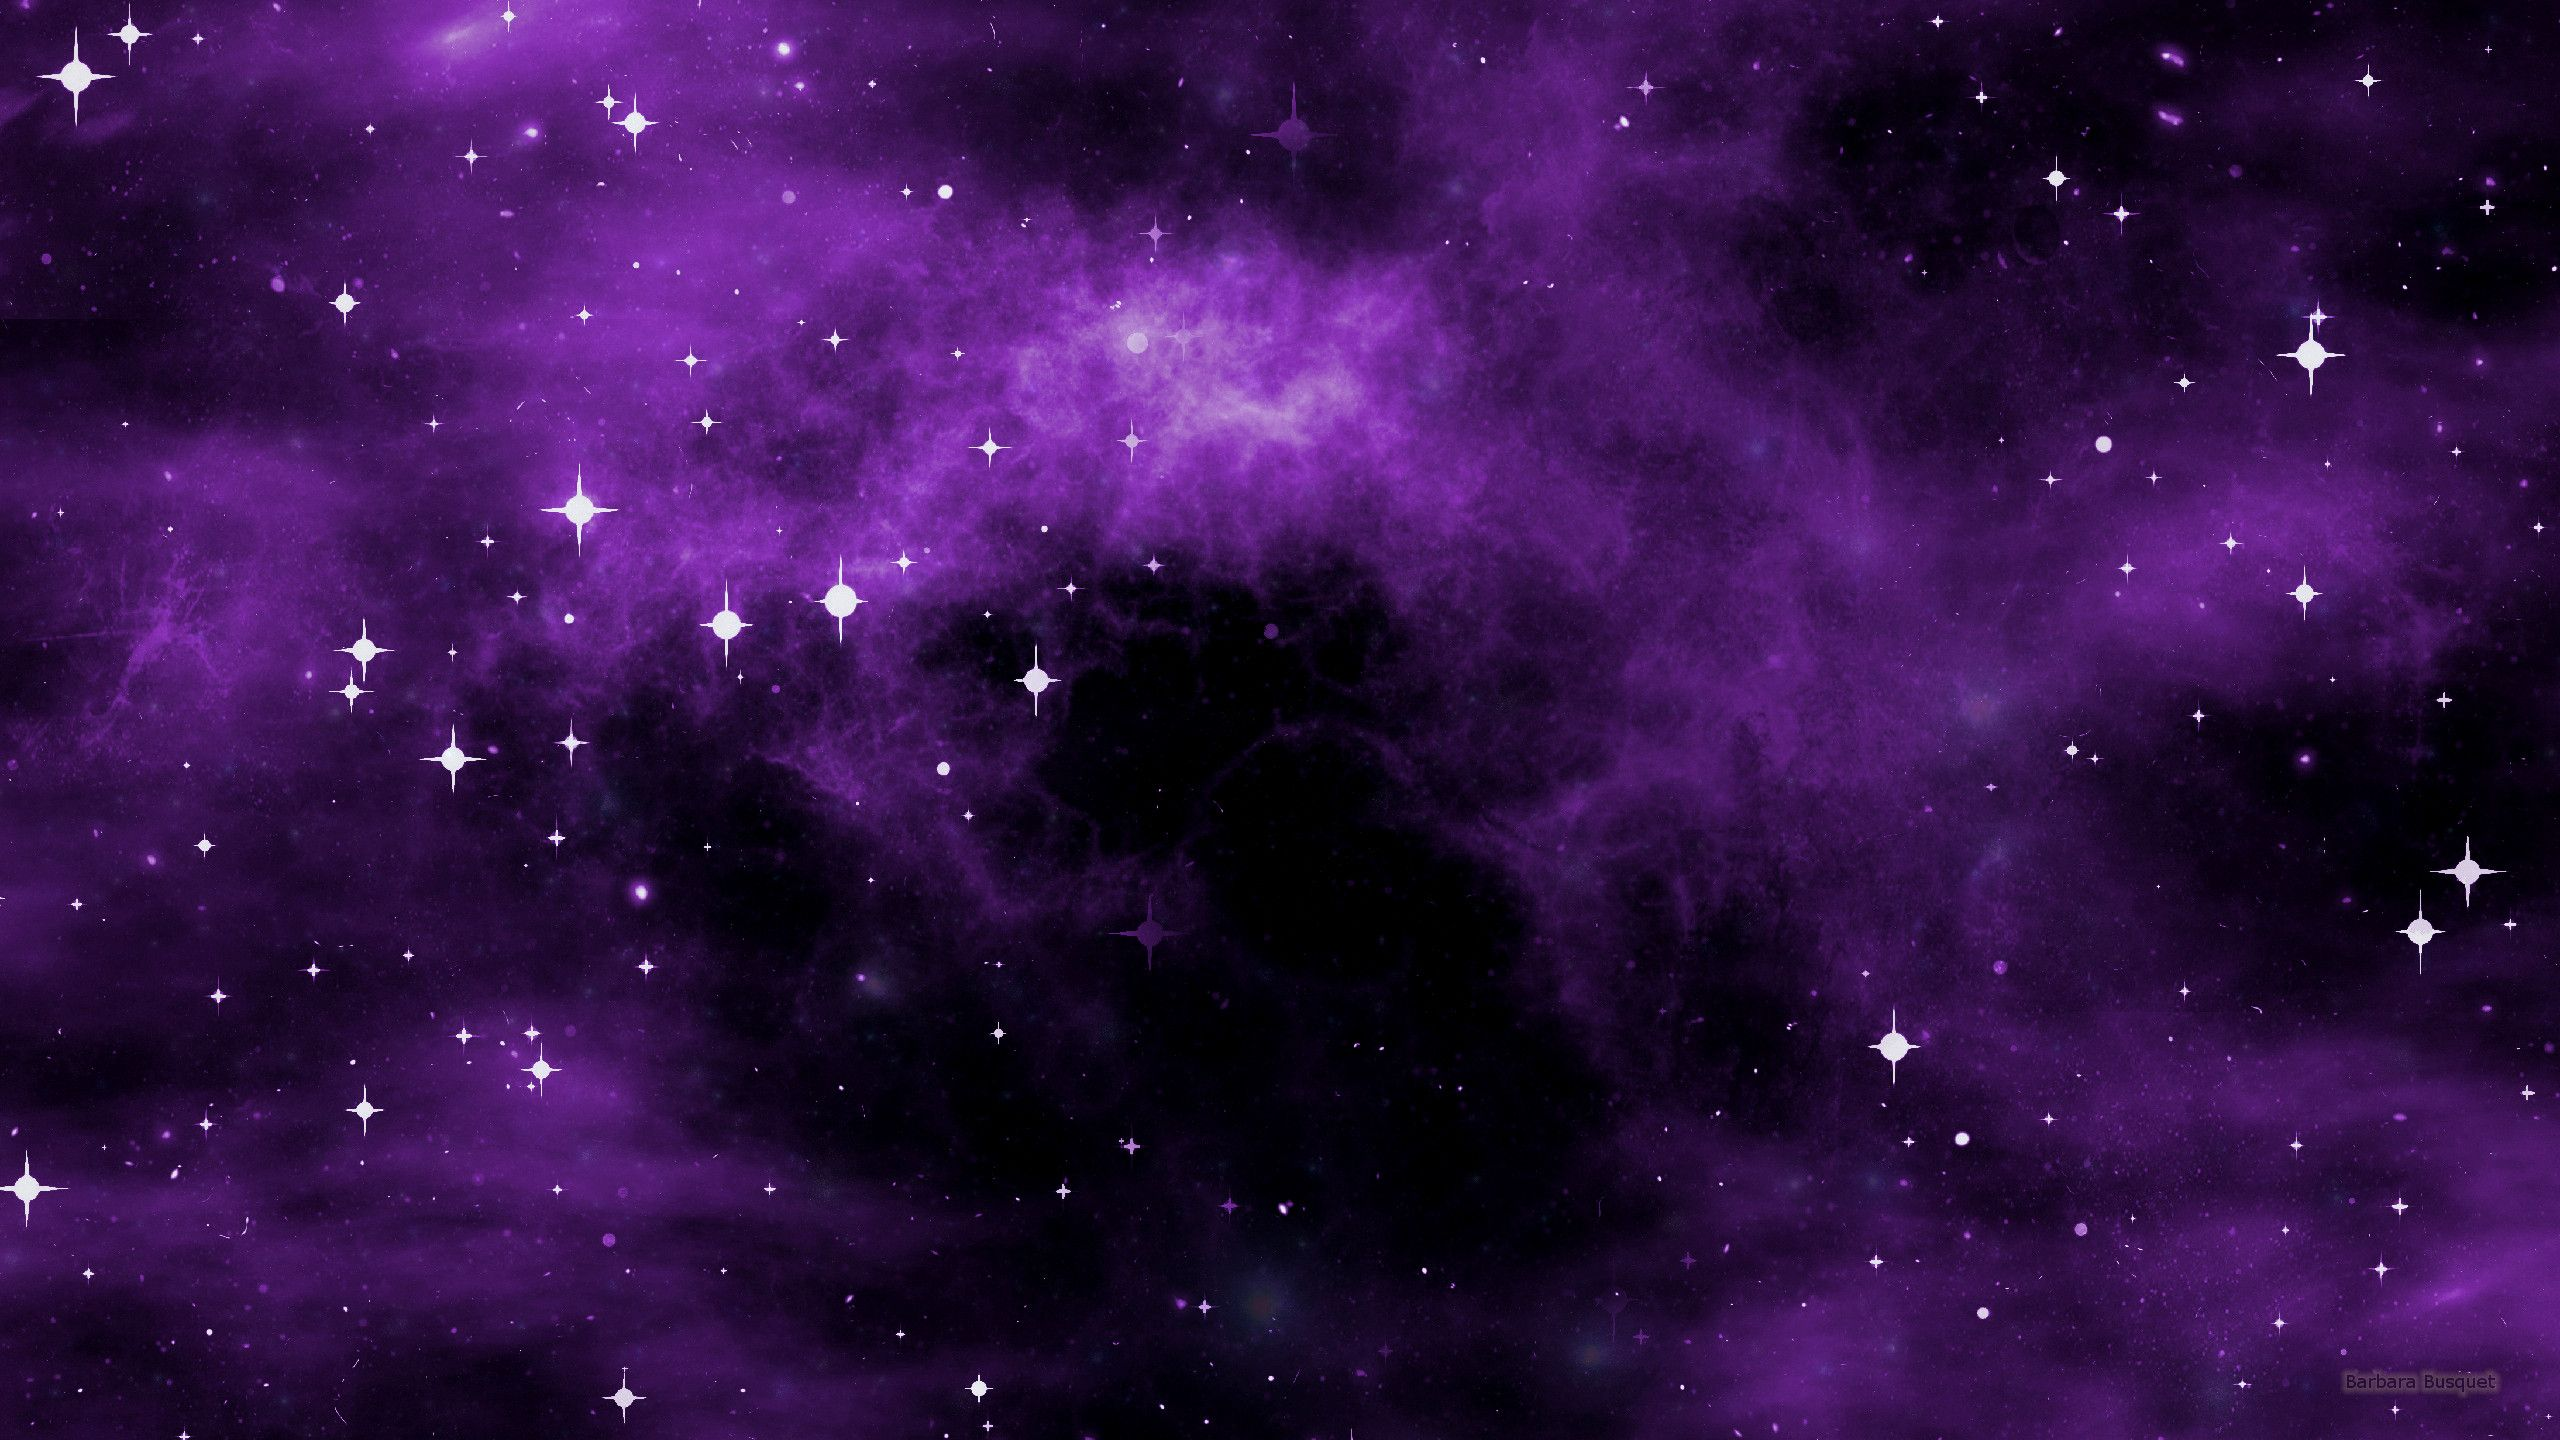 Download Purple Galaxy Wallpaper High Quality For Free Wallpaper Monodomo In 2020 Galaxy Wallpaper Purple Galaxy Wallpaper Macbook Air Wallpaper